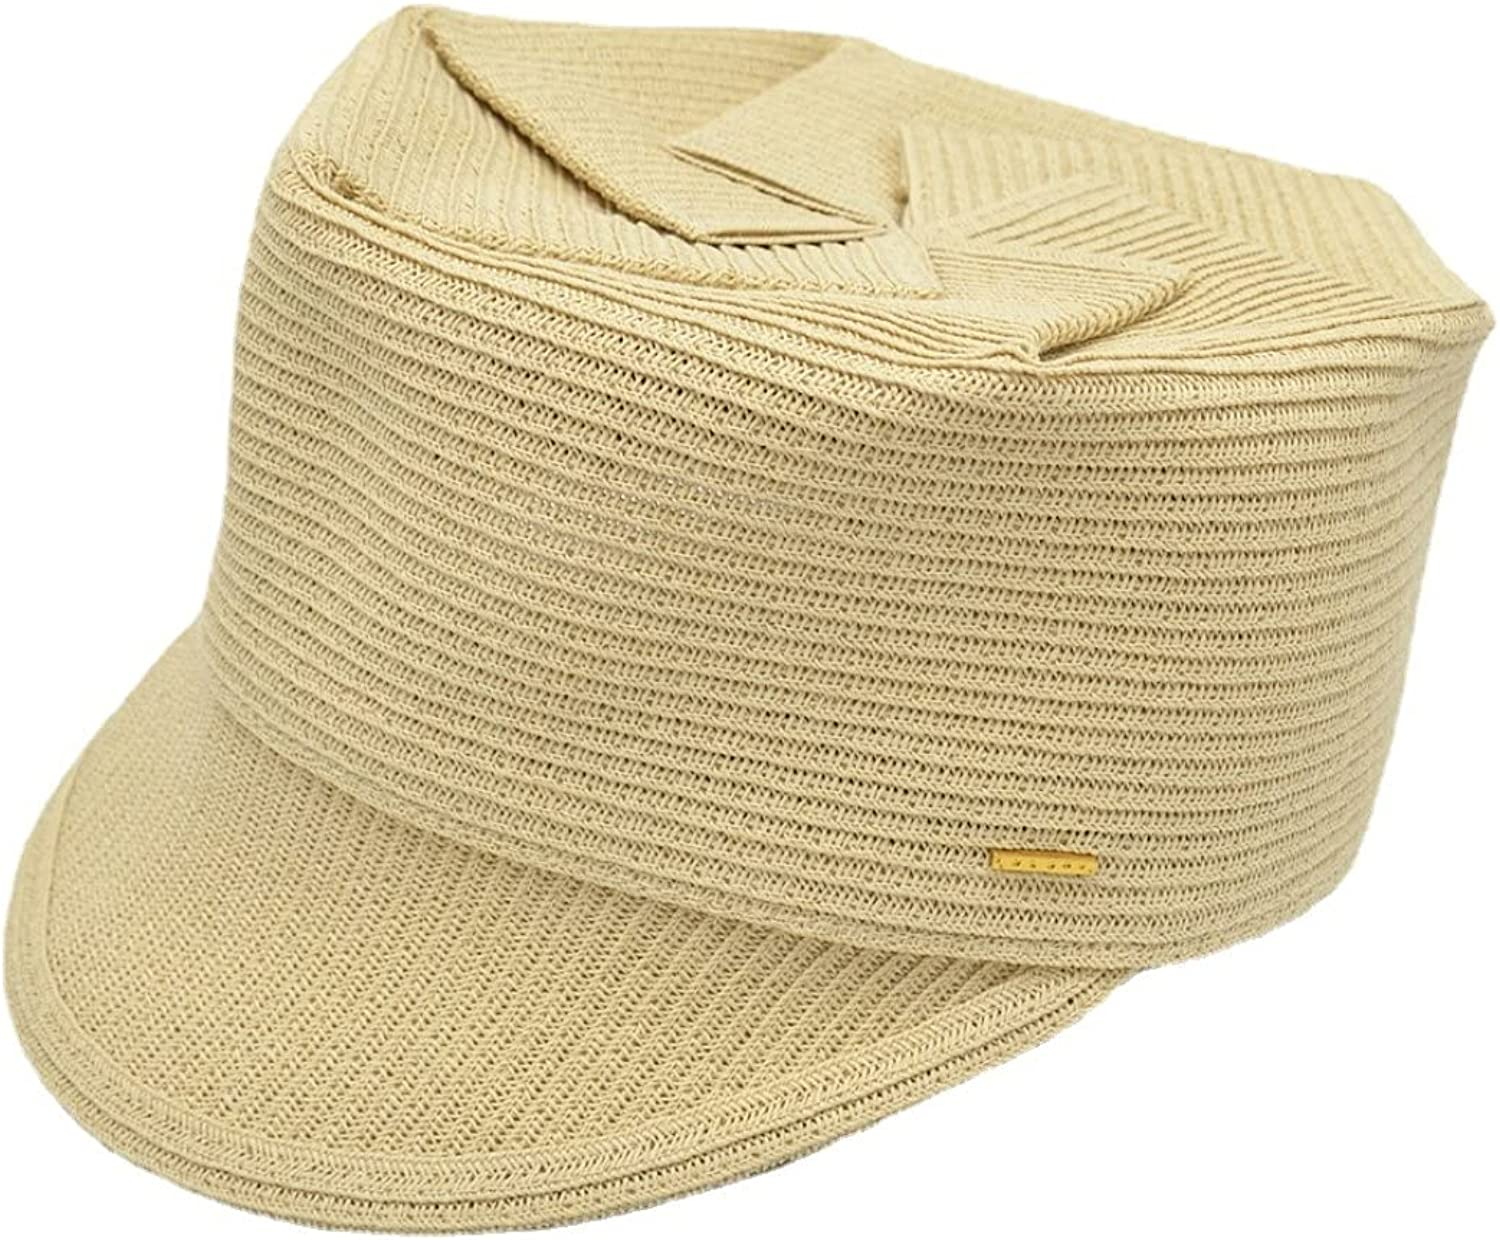 Fashion Flat Top Folding Equestrian Hat Summer Ou Dedication Casual Sale special price Cap